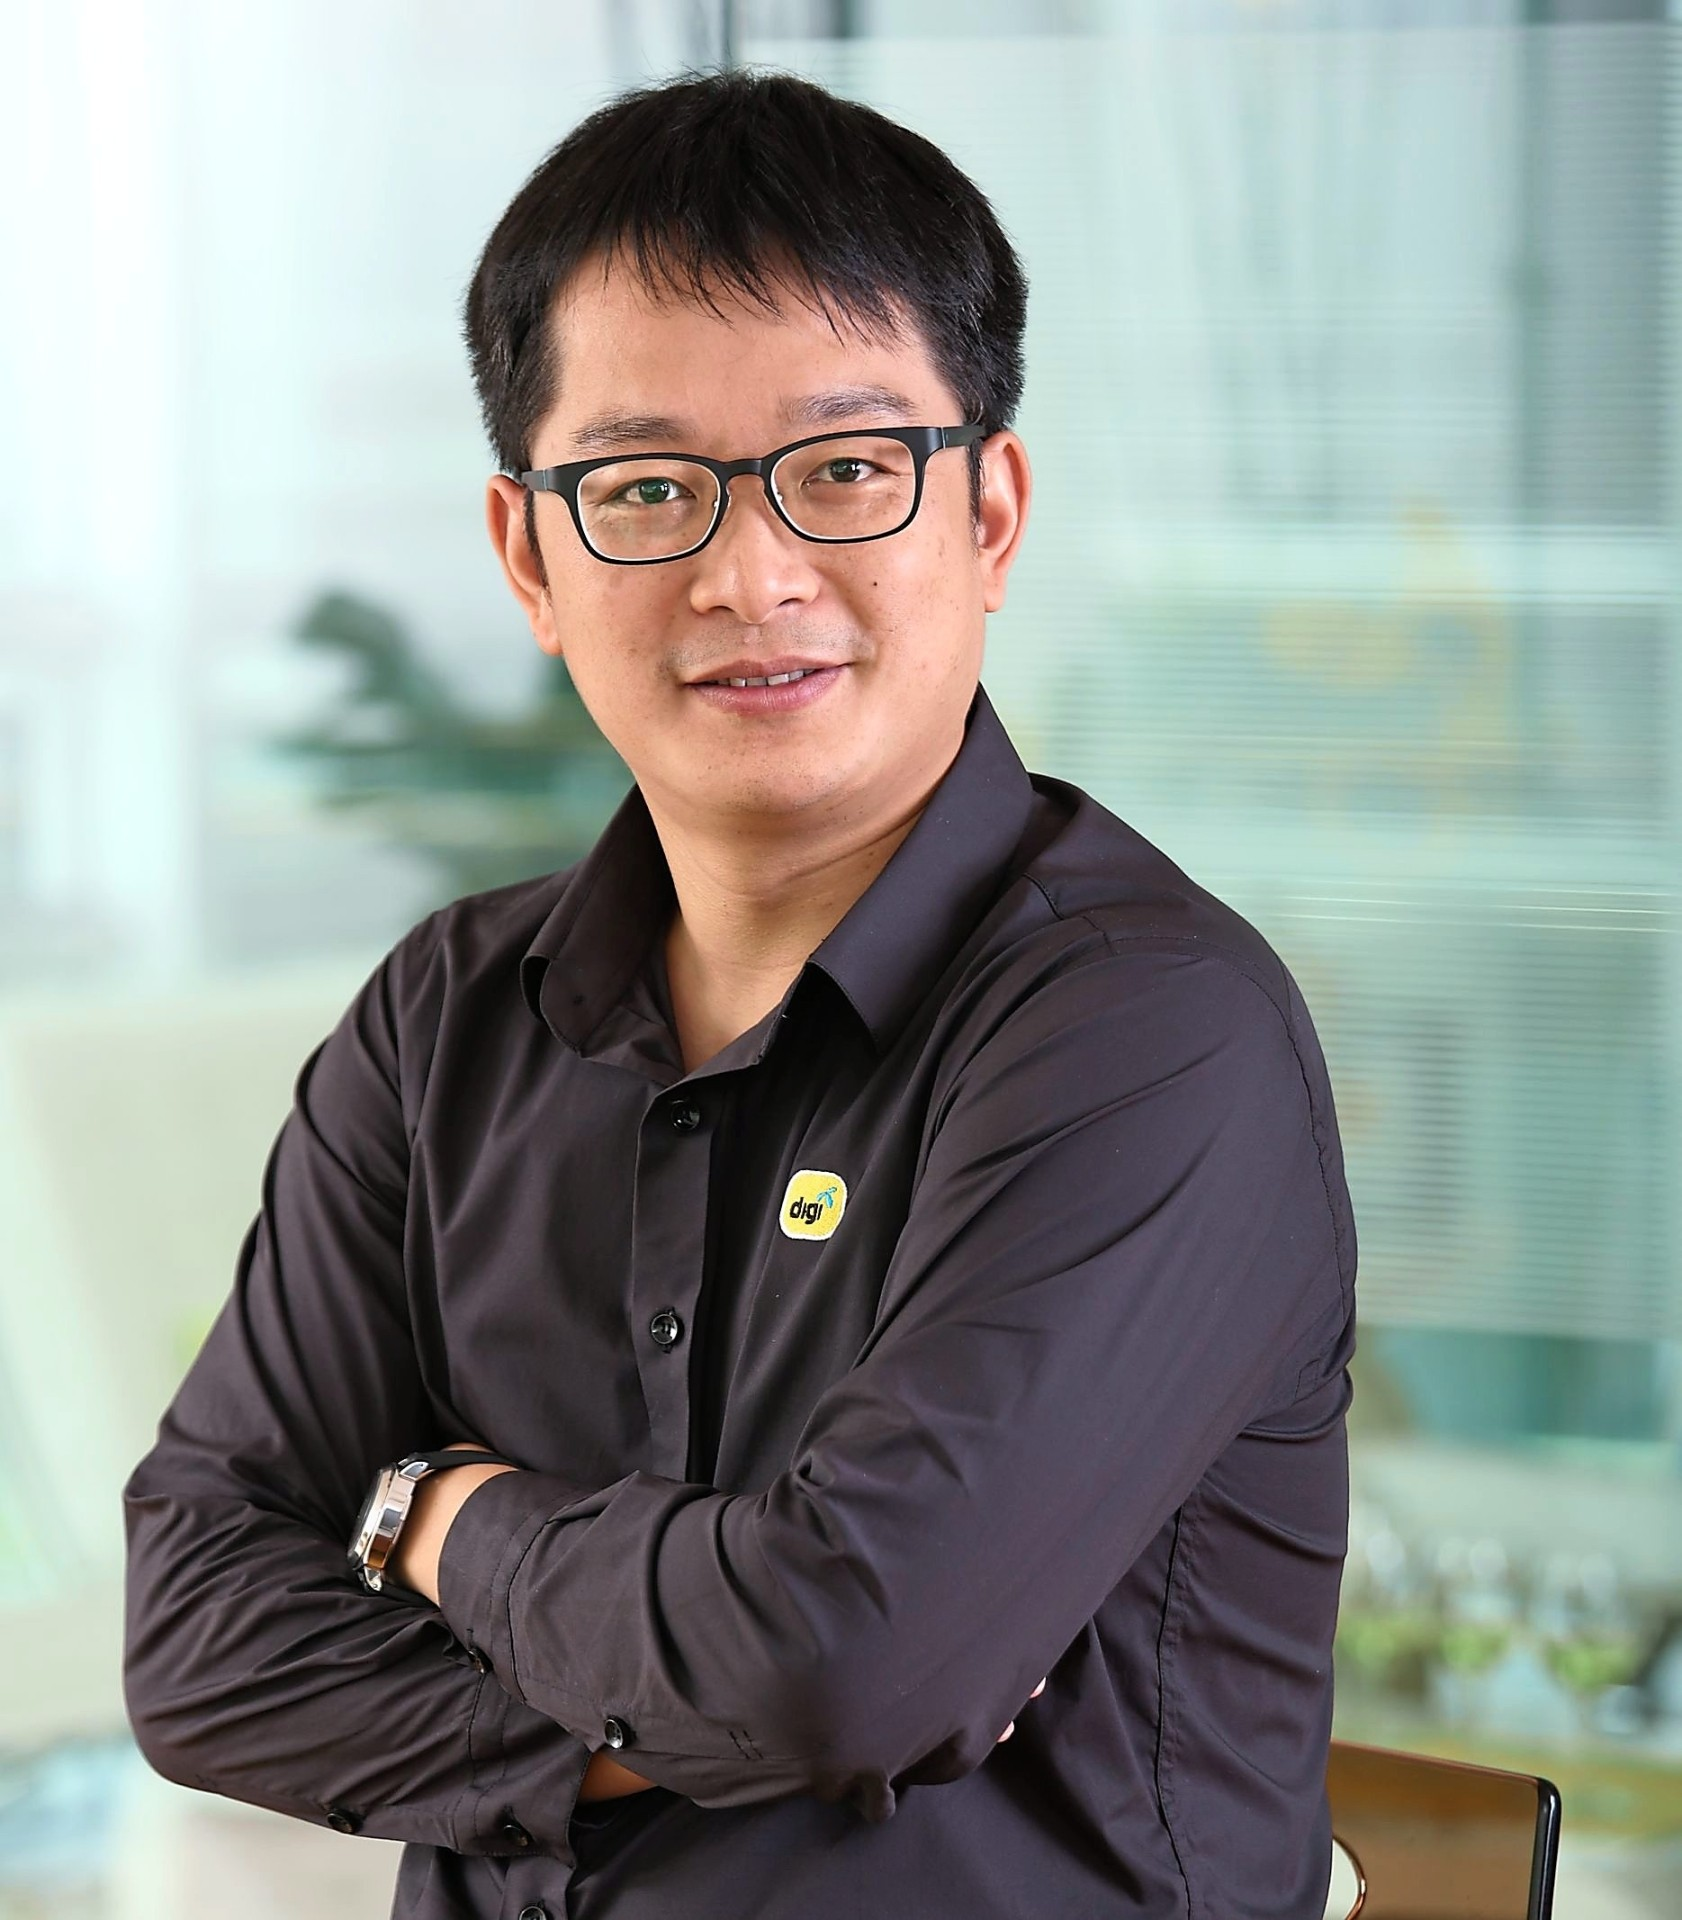 Stumbling block: Teh noted that SMEs lack the awareness and understanding on kickstarting their digital transformation journey.